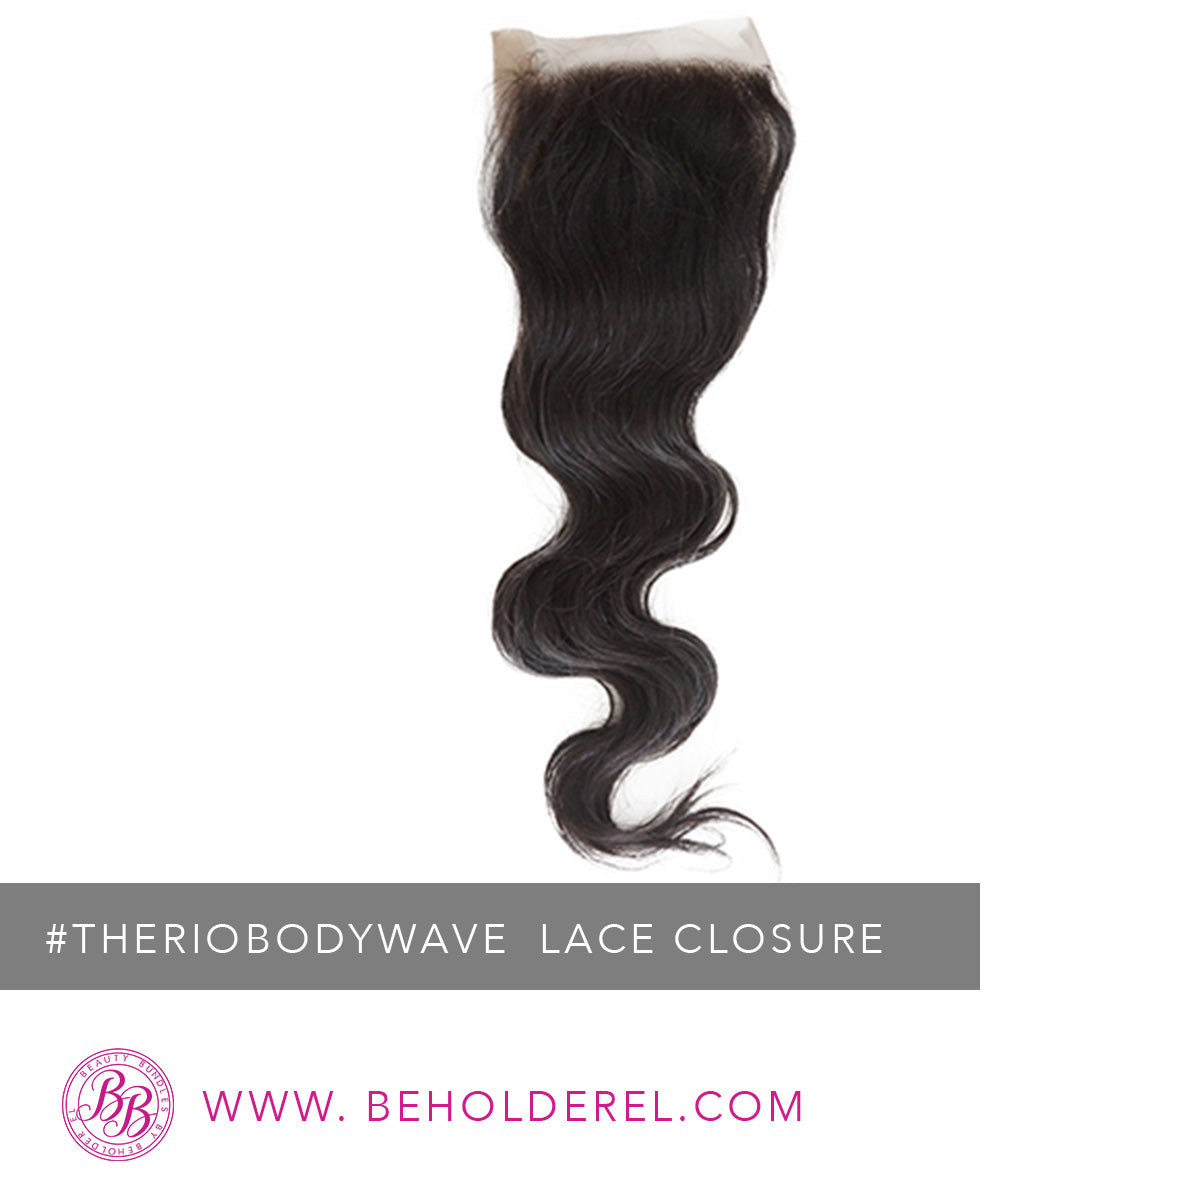 Brazilian Body Wave<br>Lace Closure<br>(The Rio Body Wave Lace Closure)